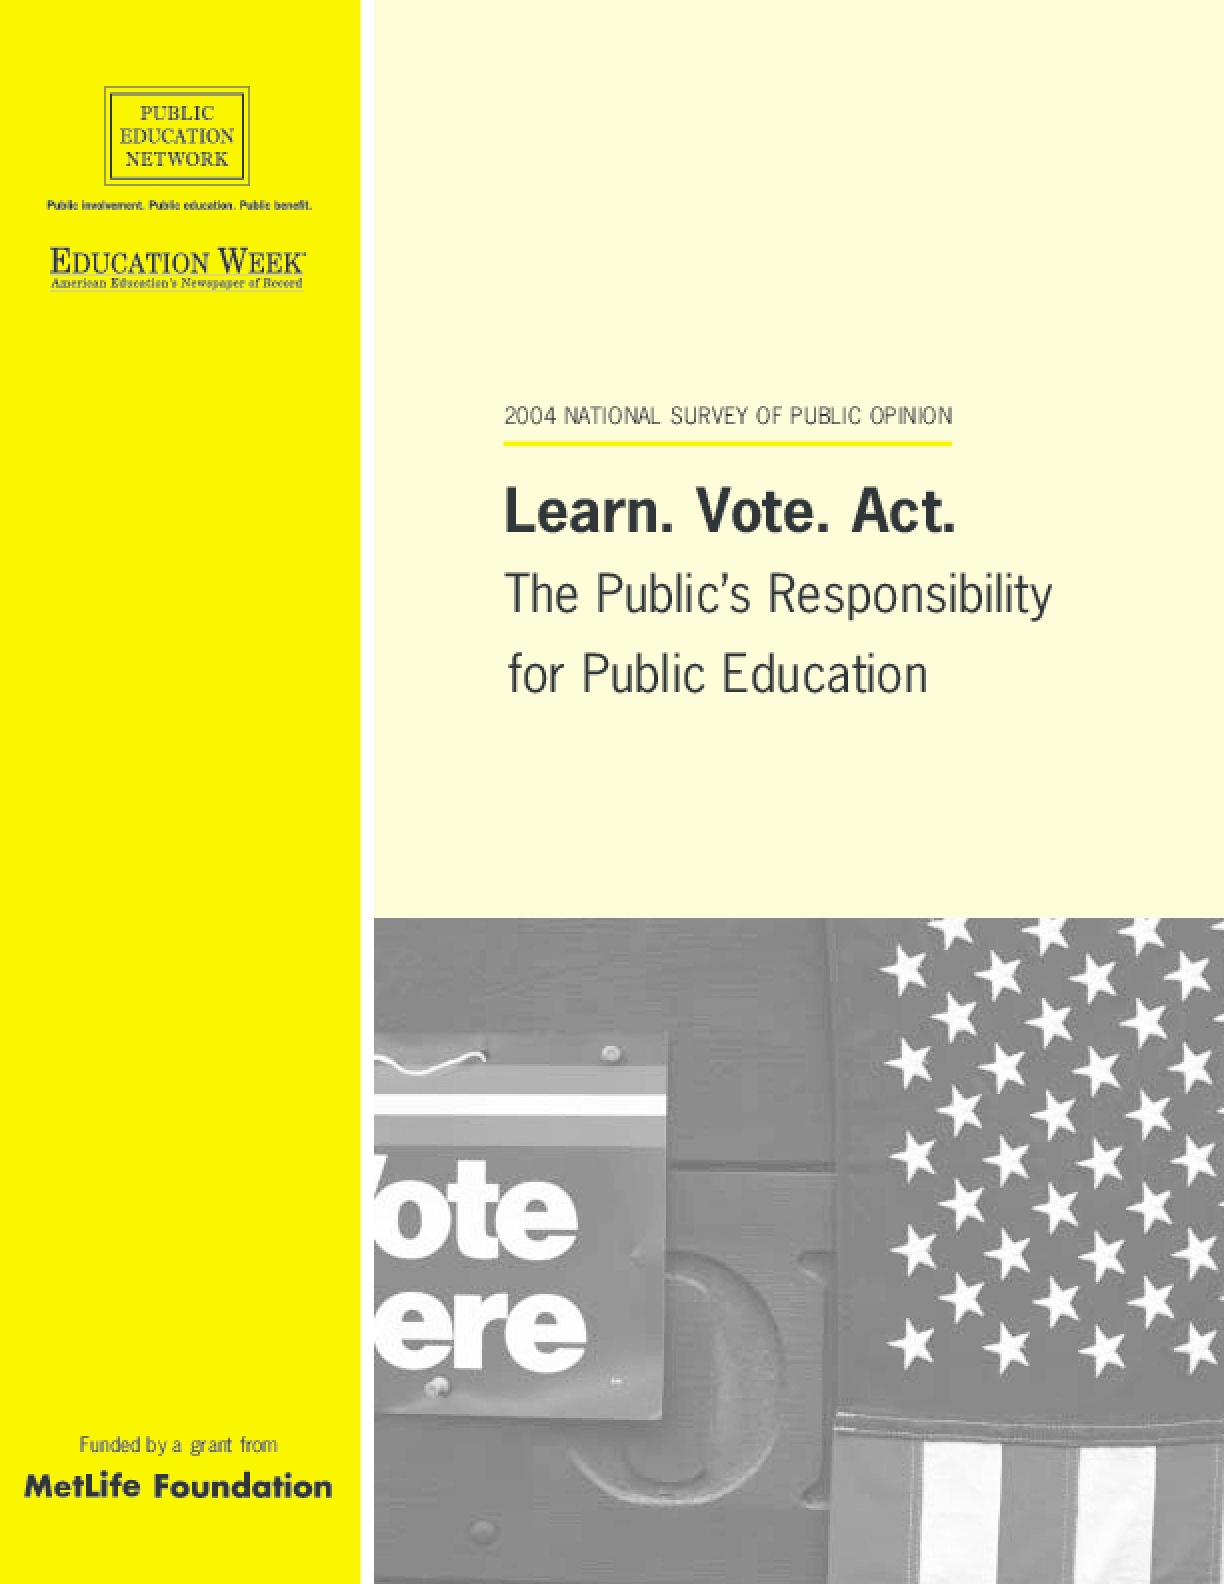 Learn. Vote. Act. The Public's Responsibility for Public Education